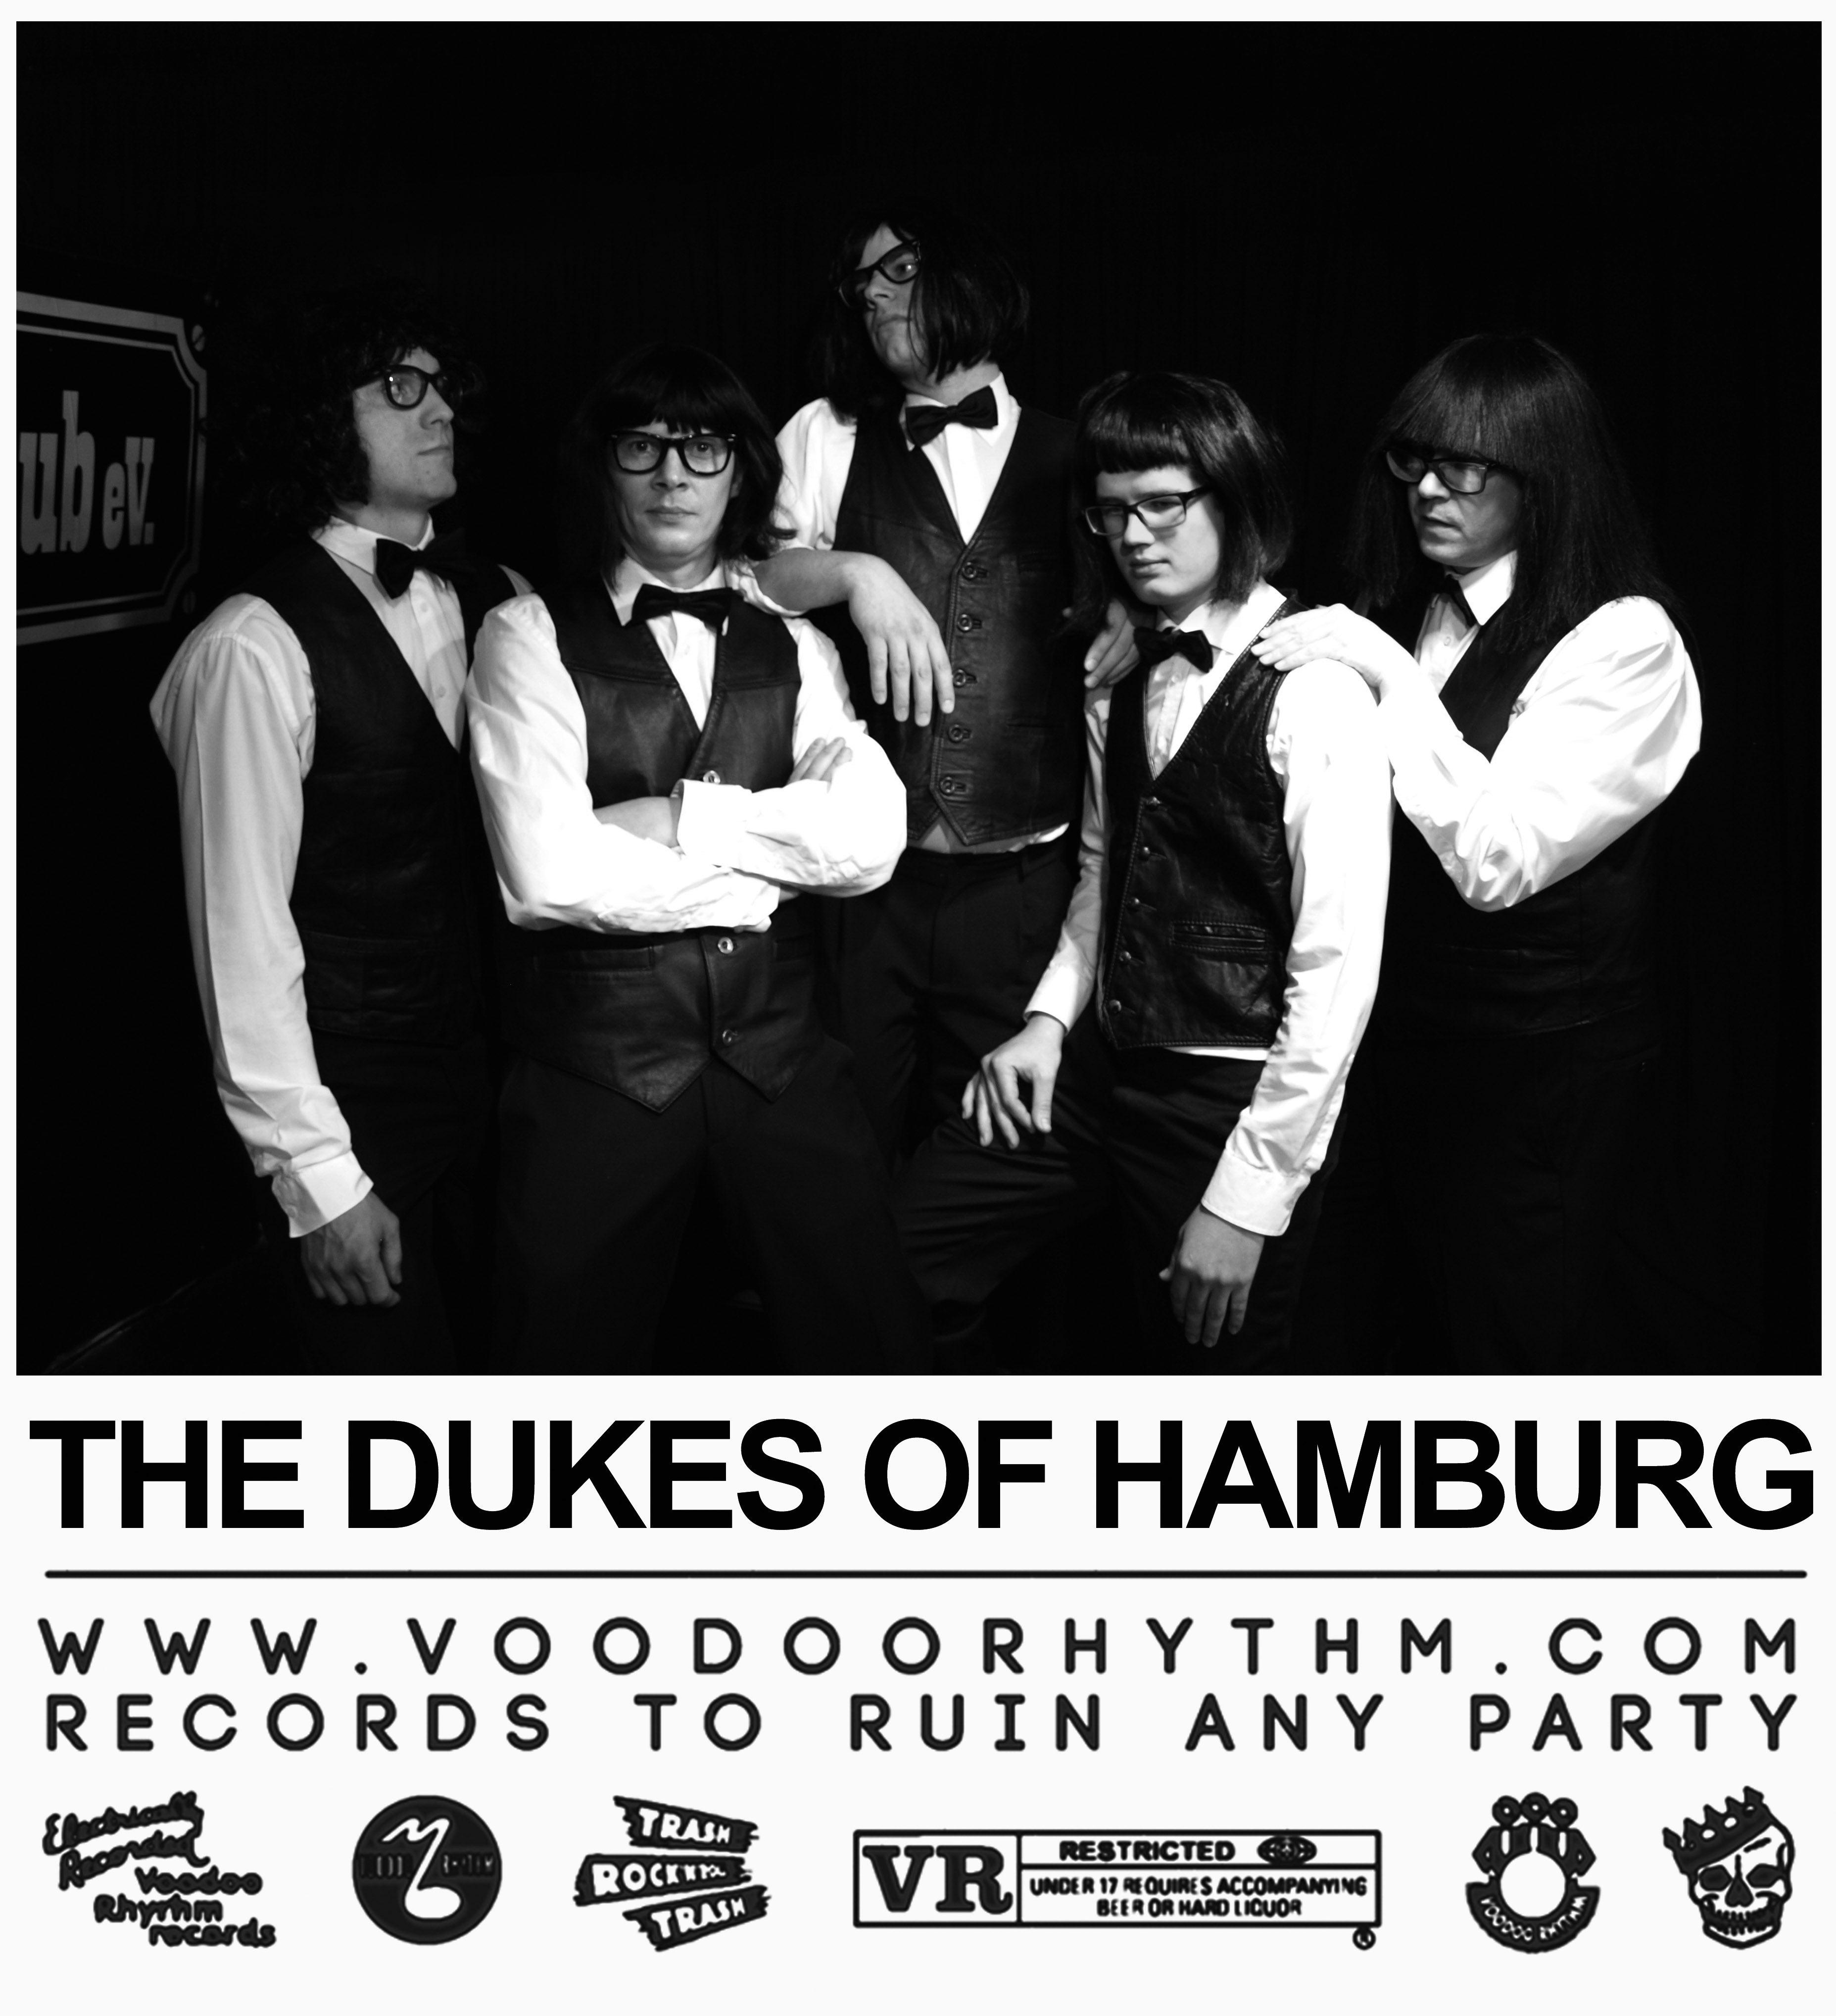 THE DUKES OF HAMBURG